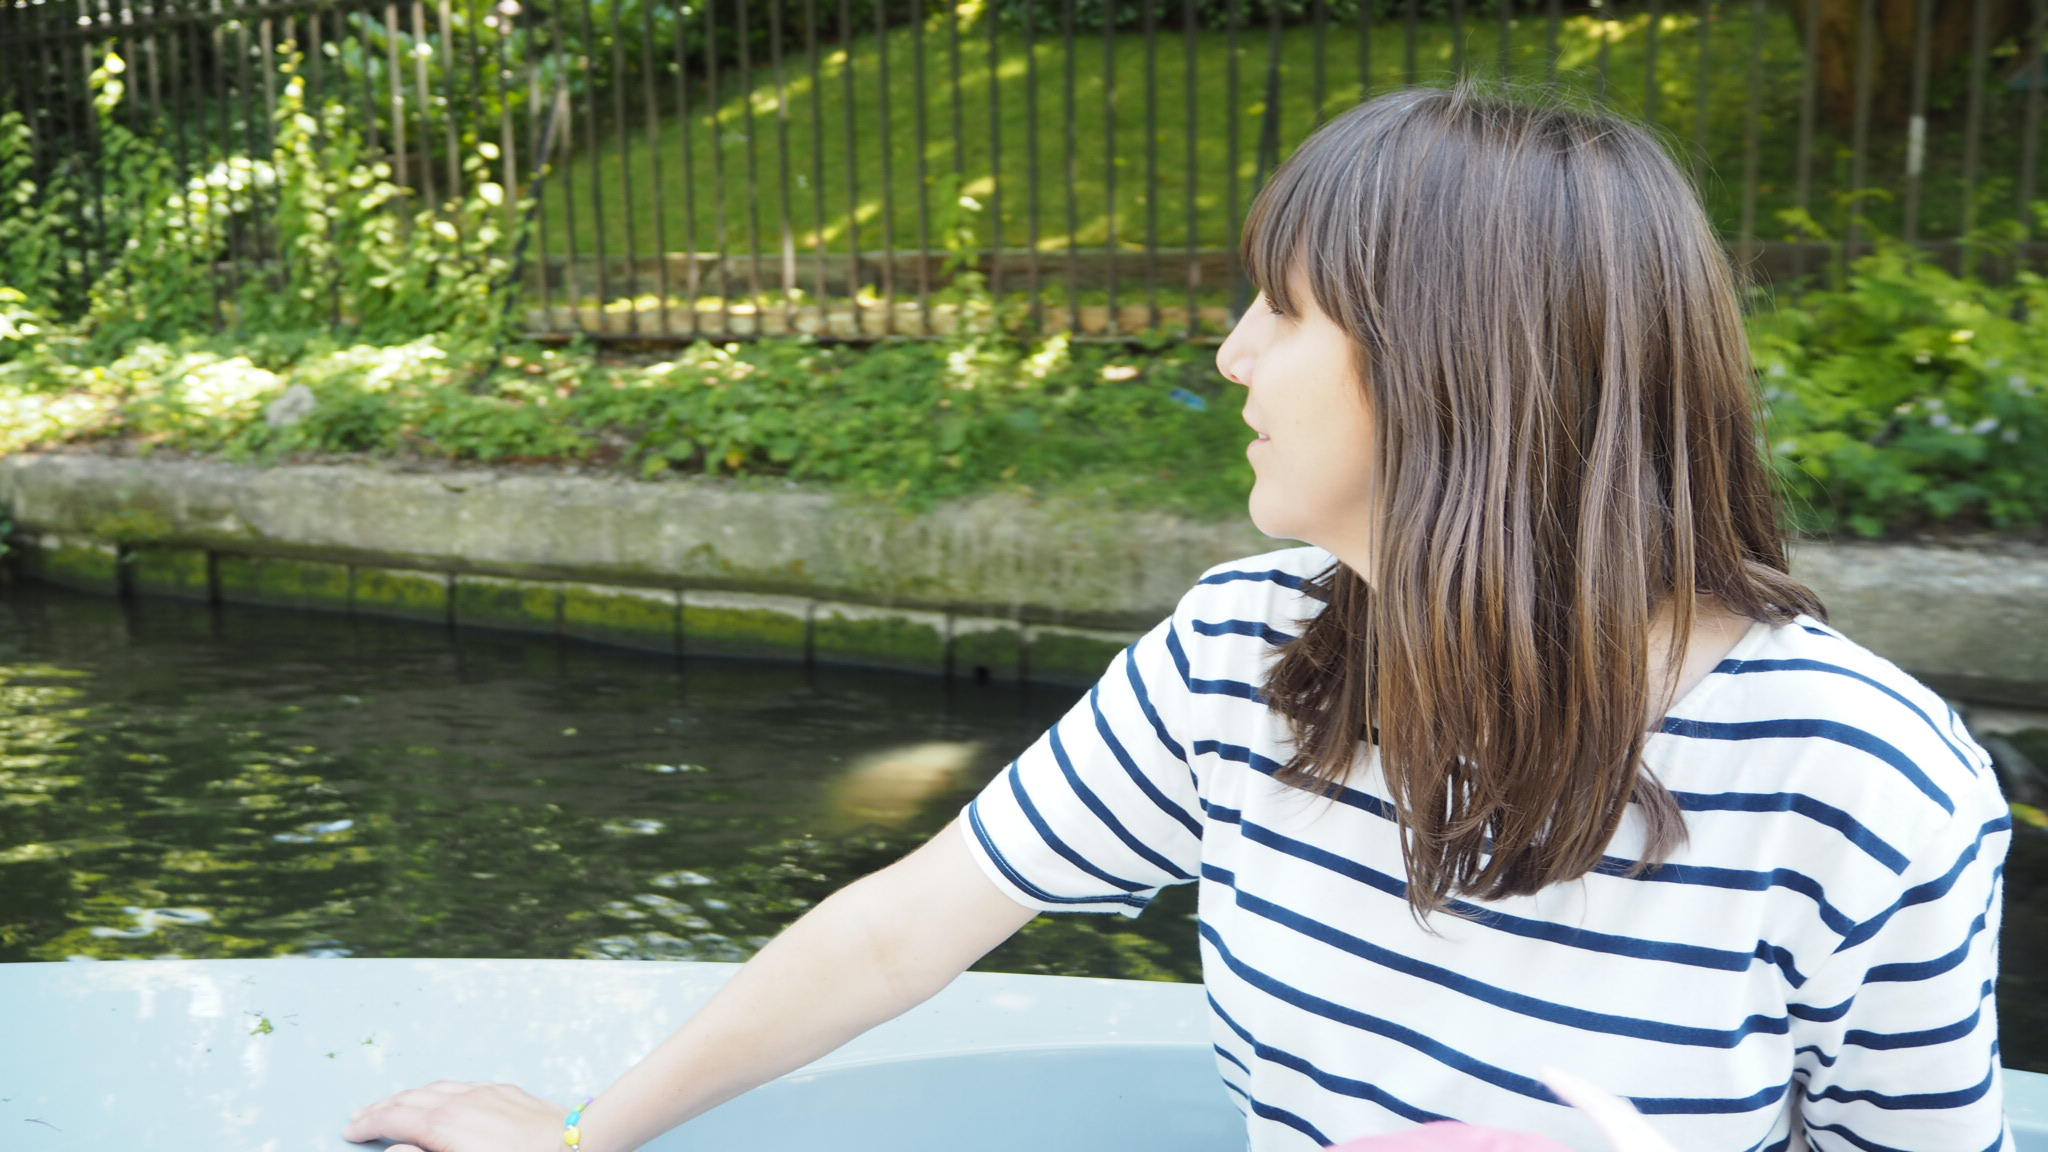 GoBoat London canal boat hire